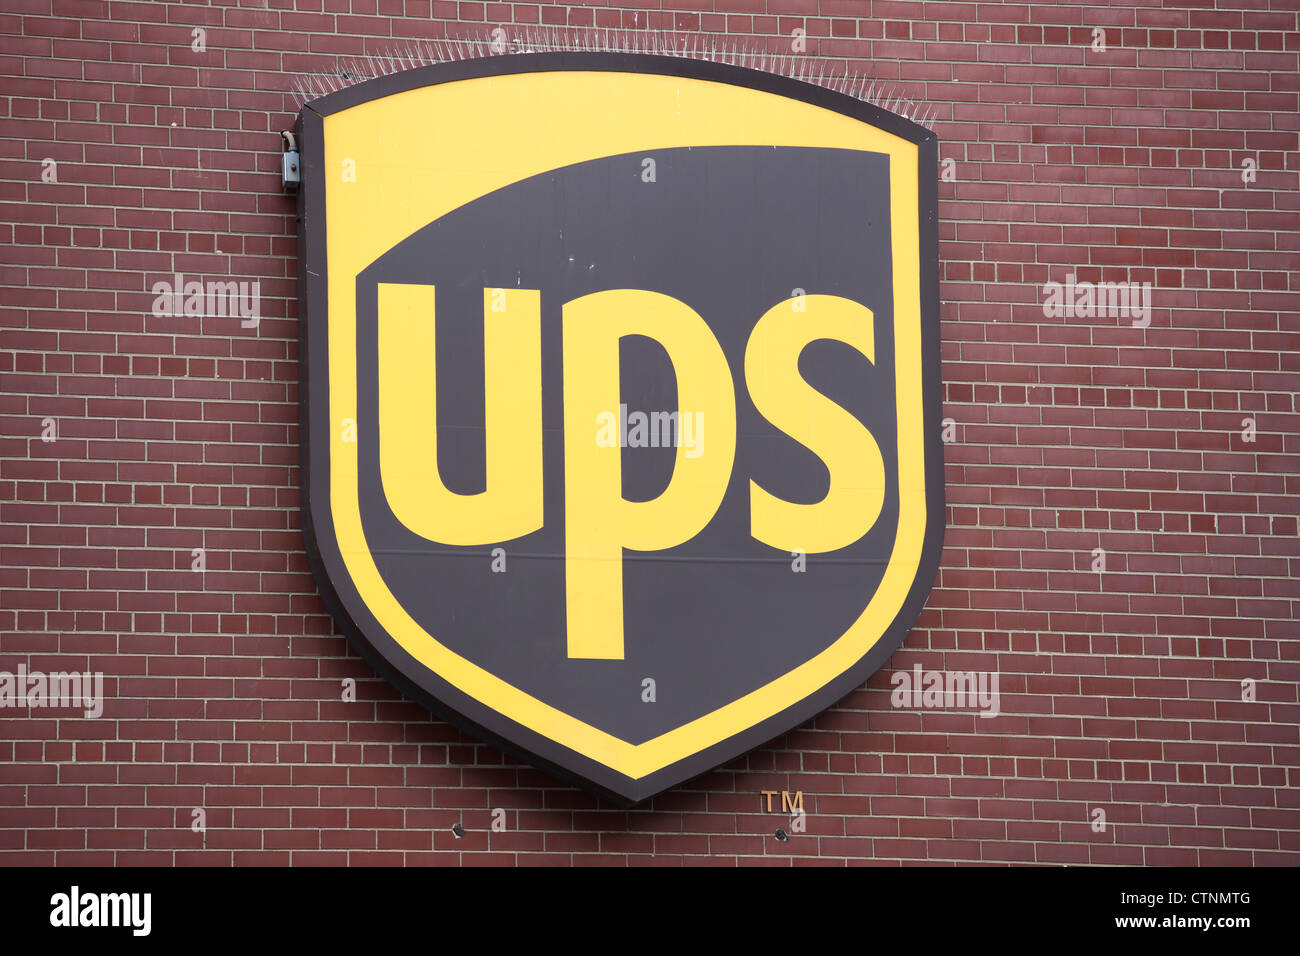 A United Parcel Service (UPS) sign on a wall. - Stock Image